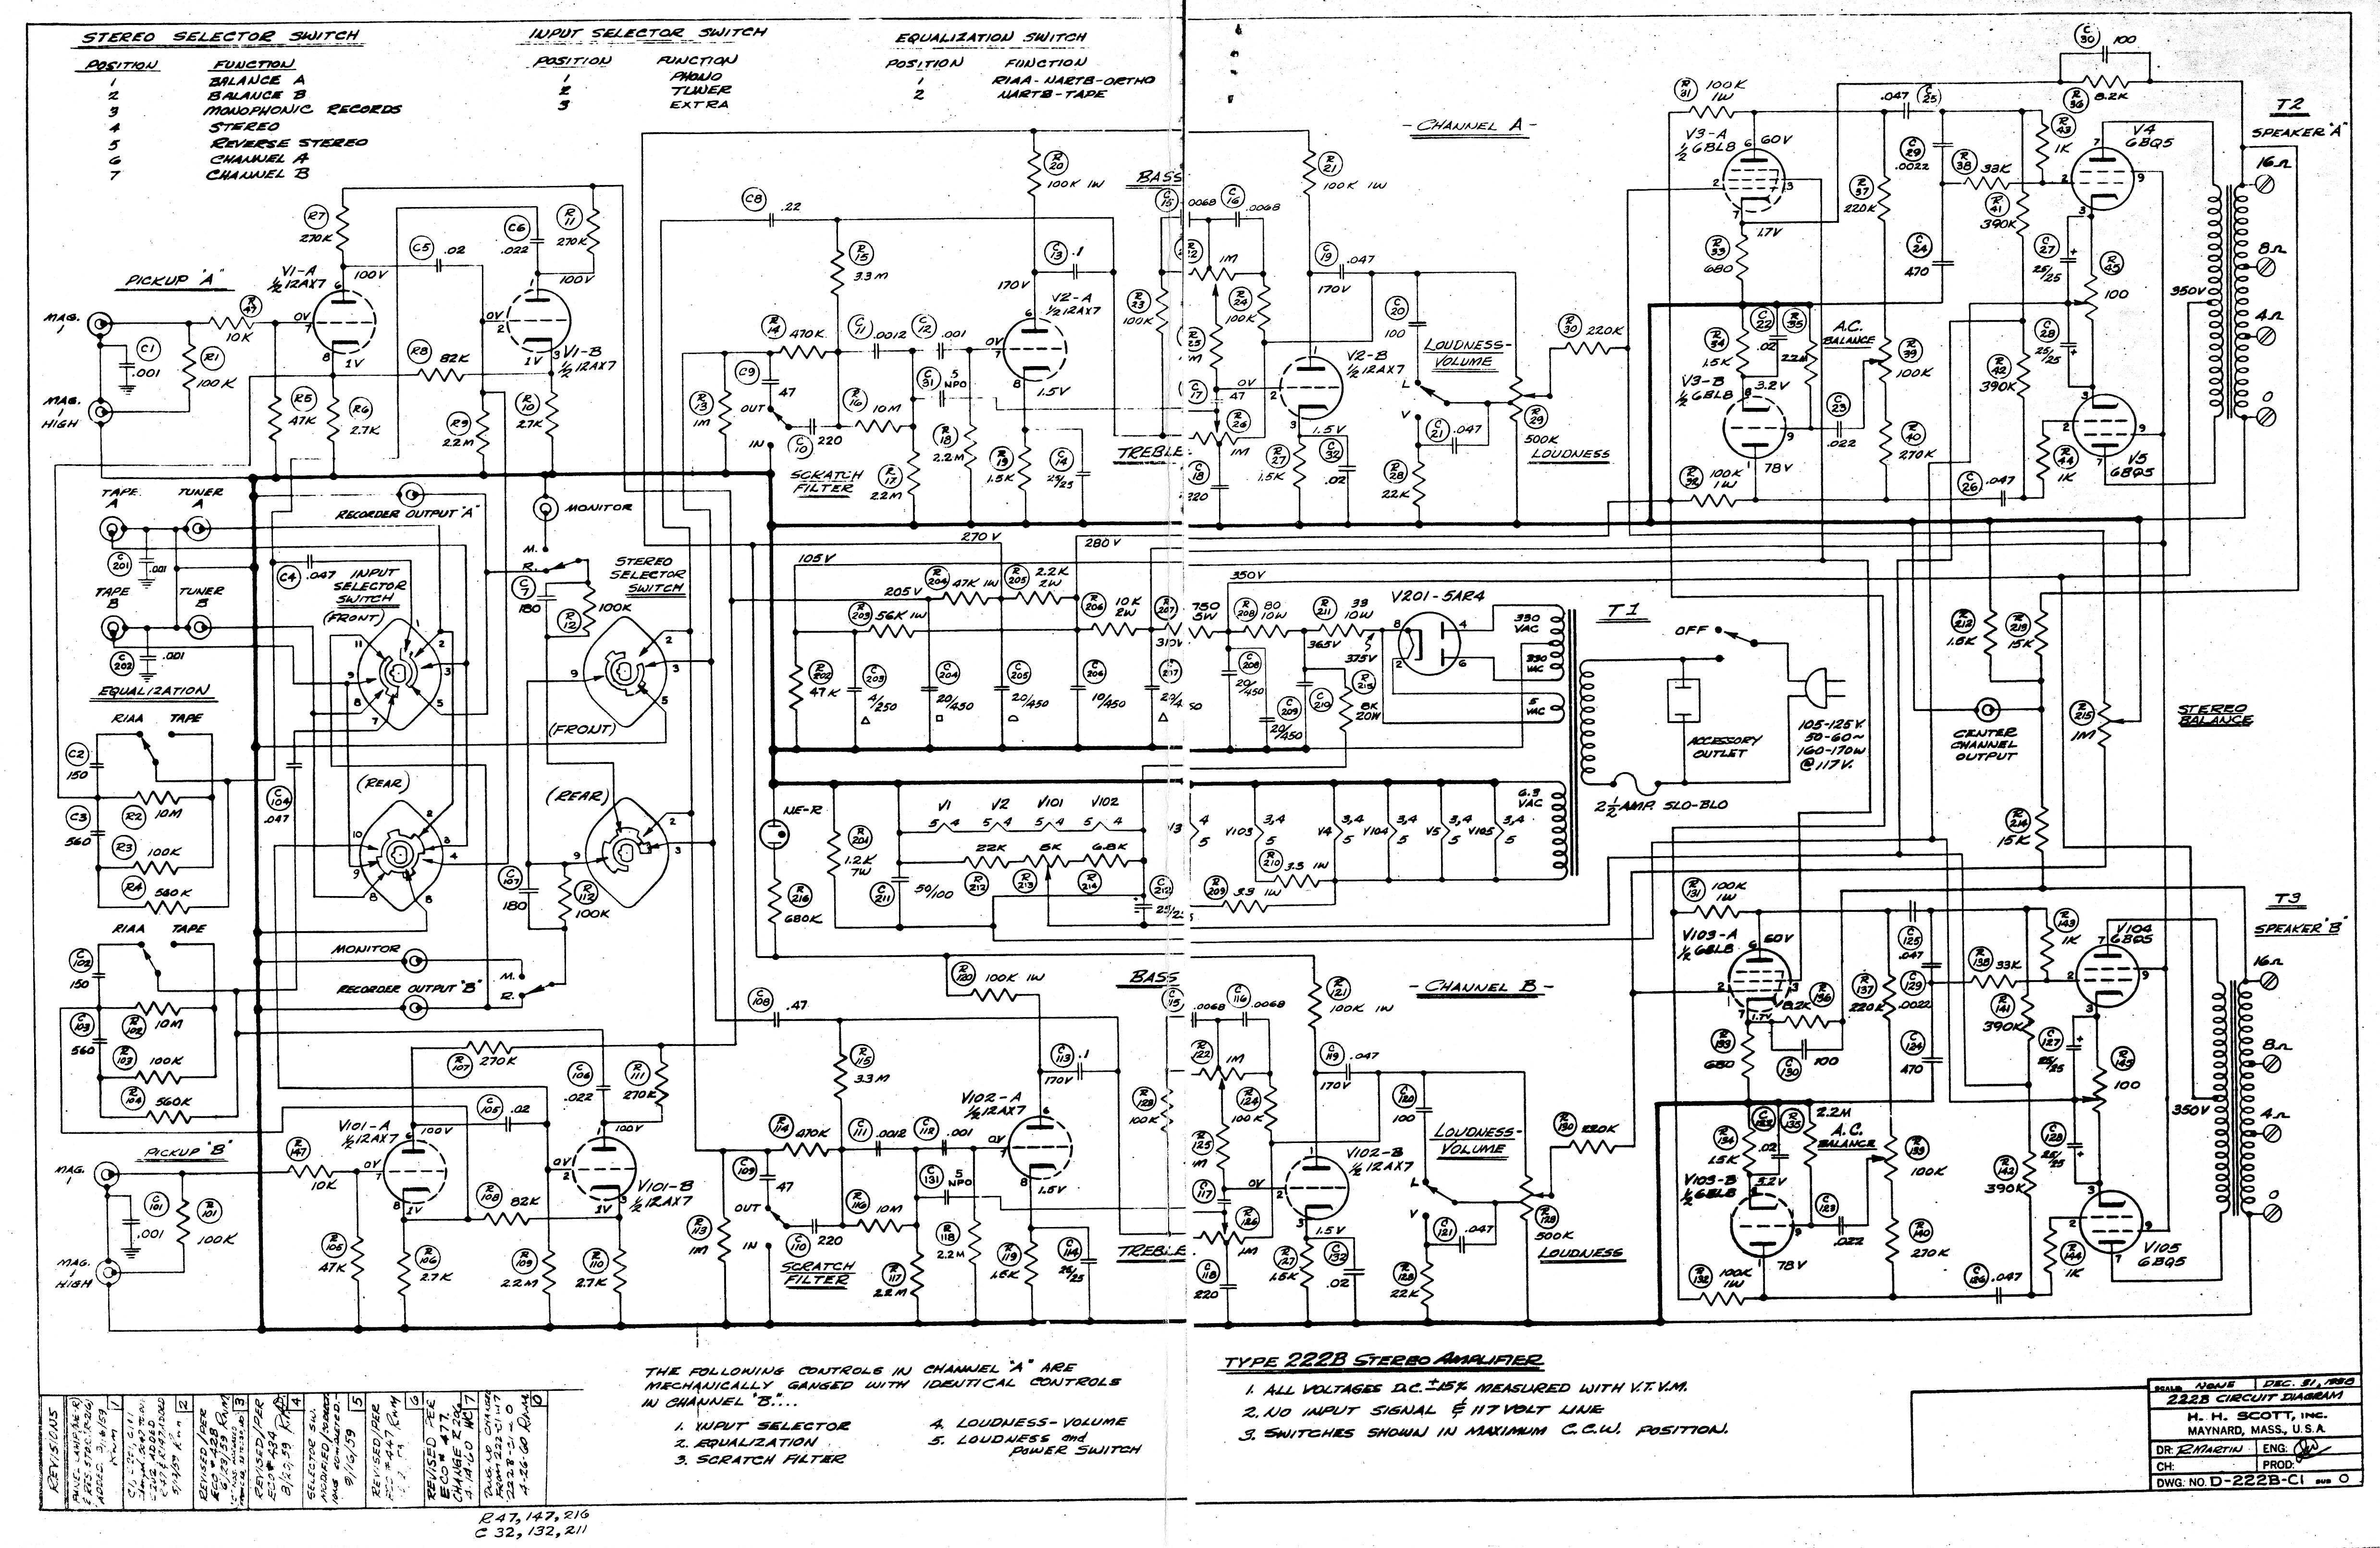 scott wiring diagram scott wiring diagrams description 222 b scott wiring diagram